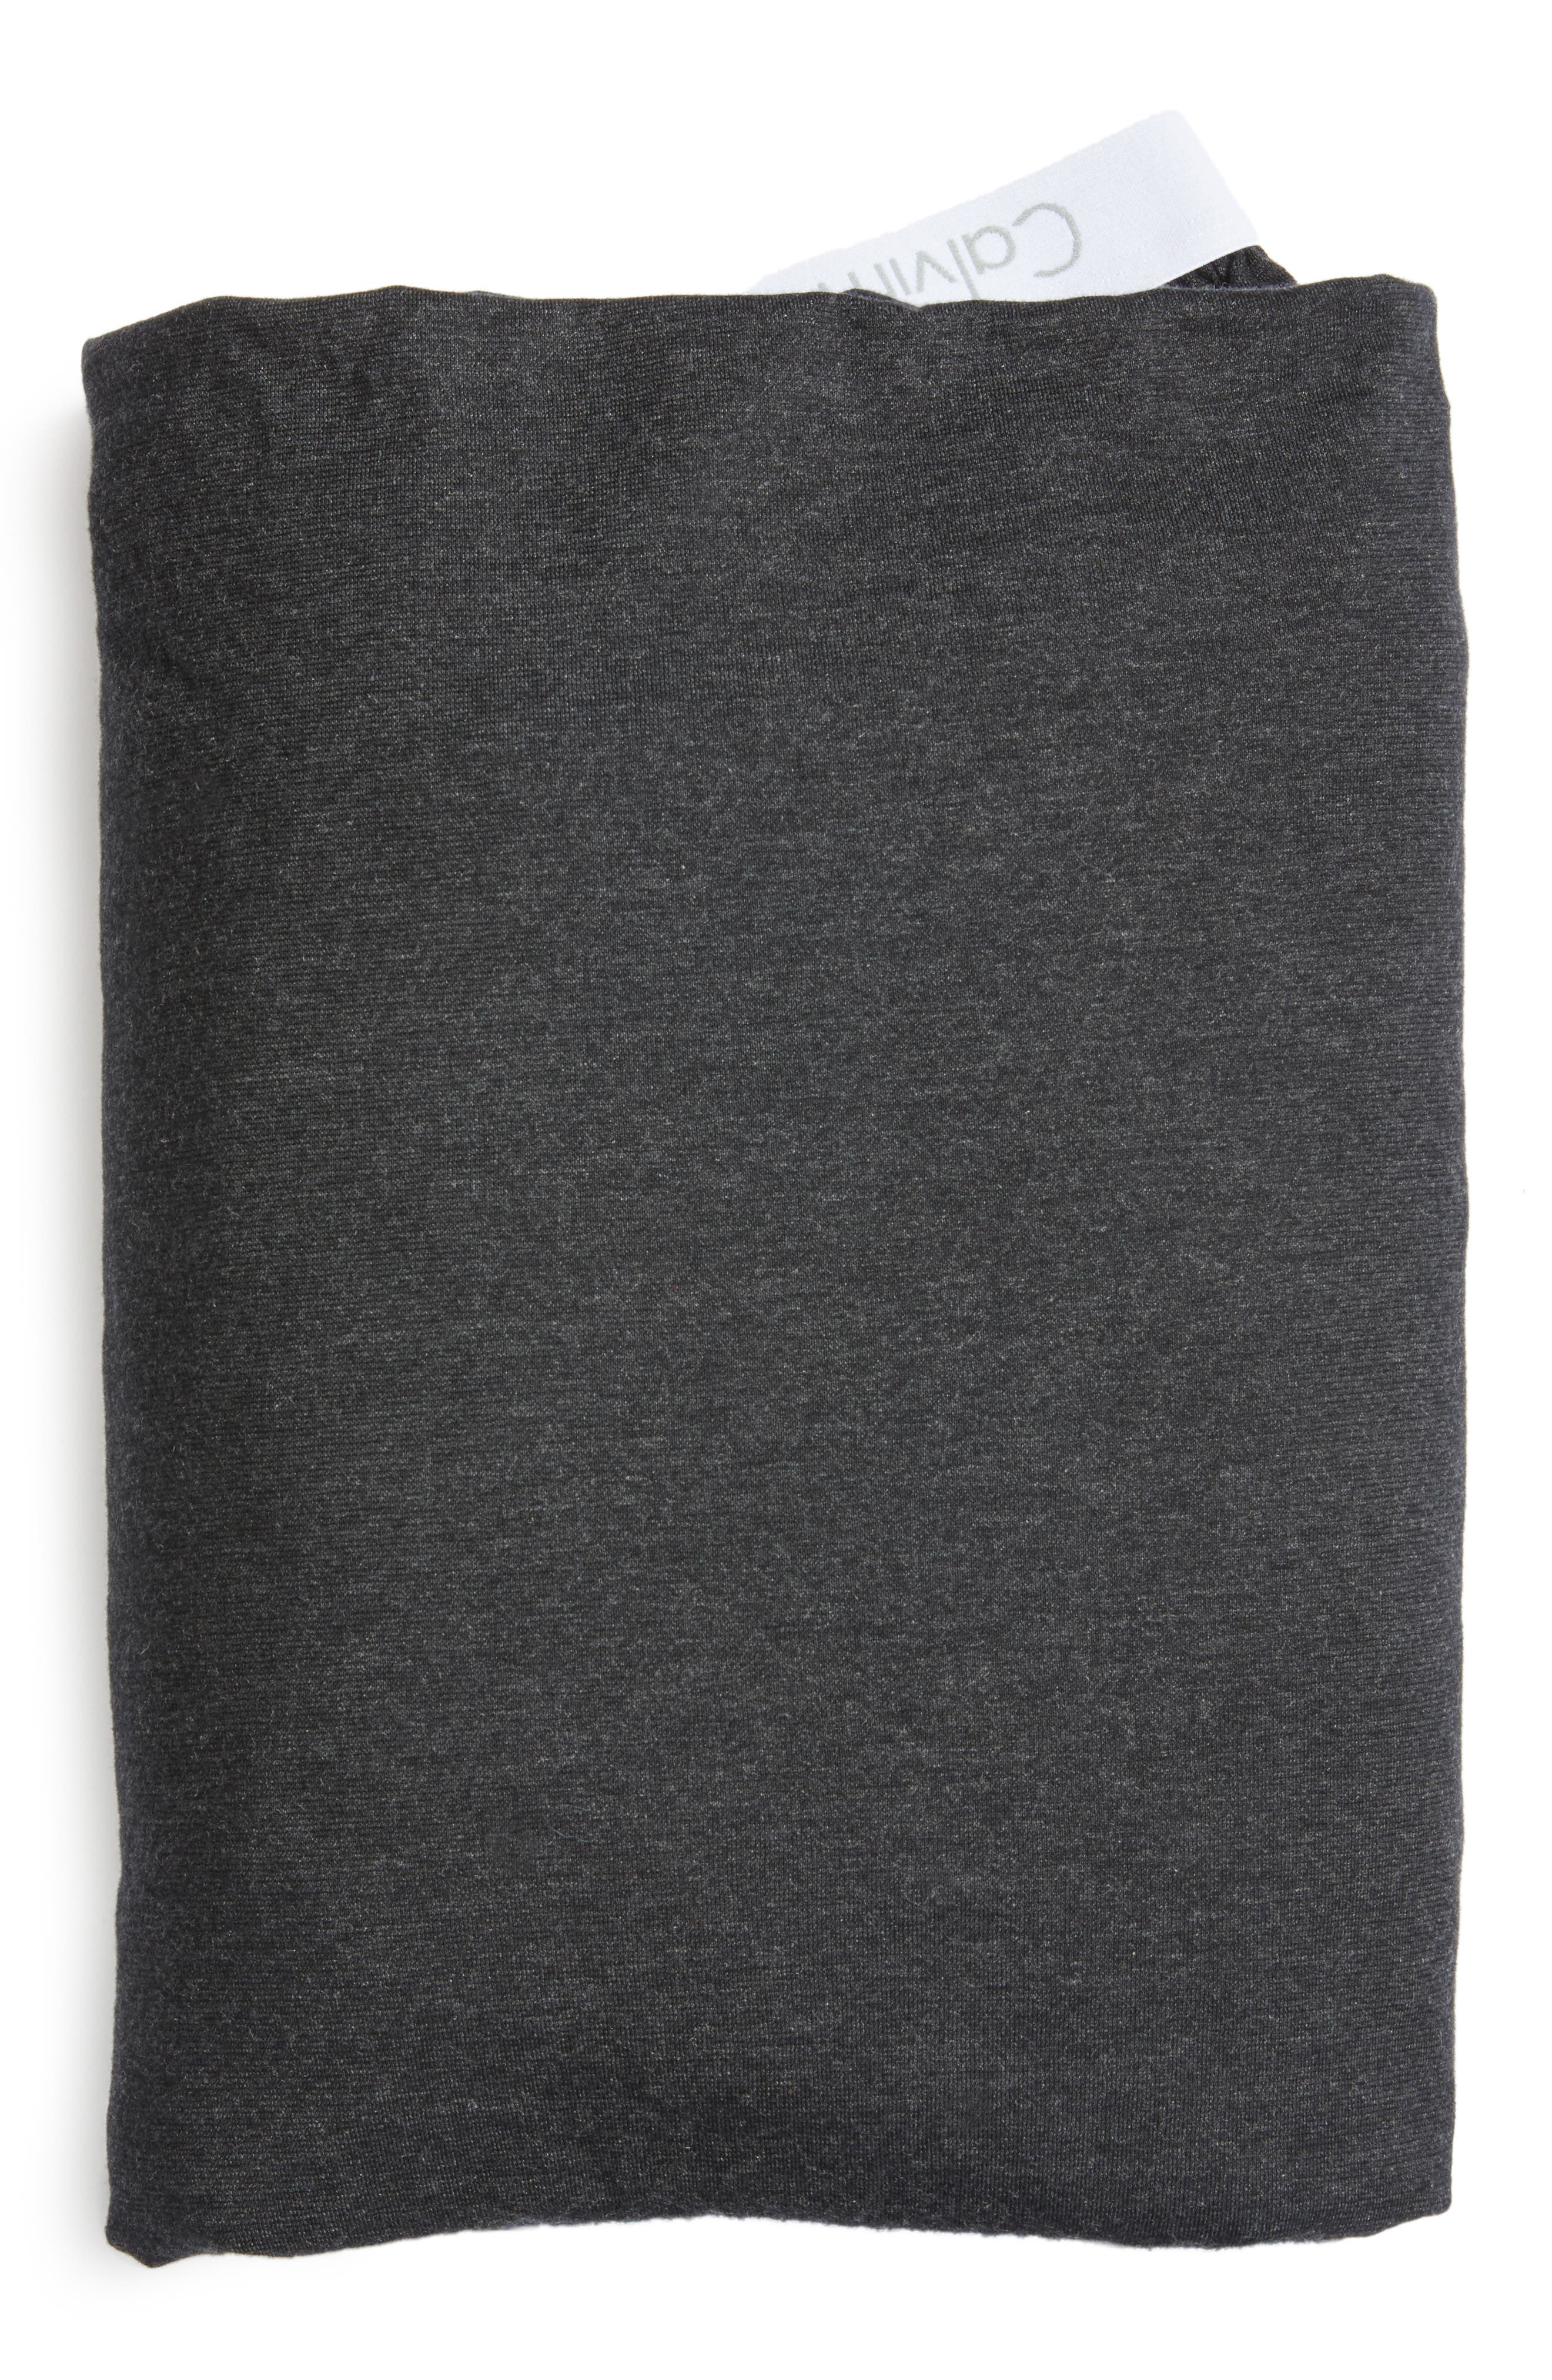 Cotton & Modal Jersey Fitted Sheet,                         Main,                         color, Muted Black